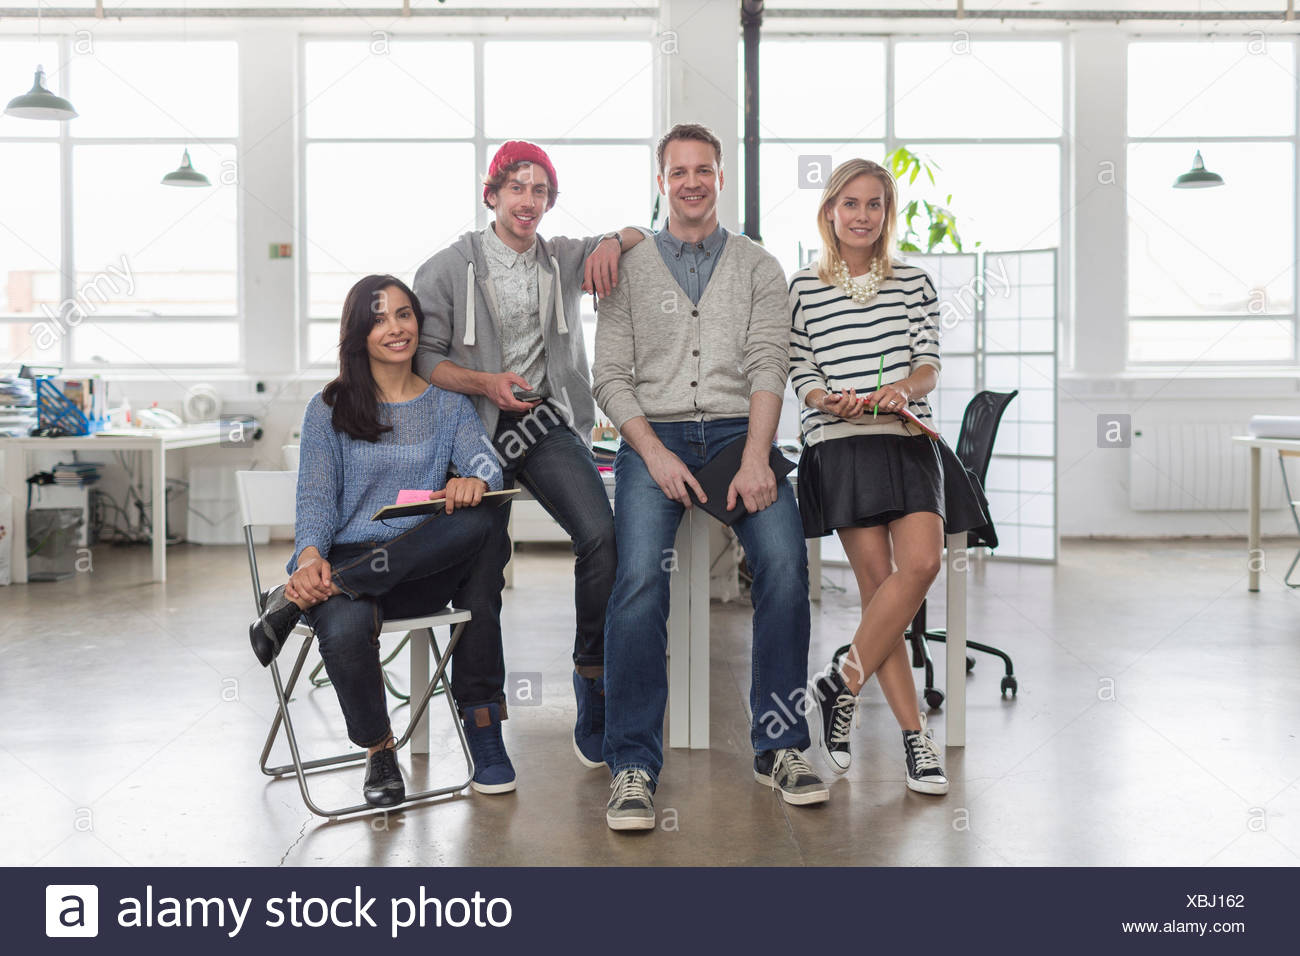 Creative business team sitting together in office, portrait - Stock Image